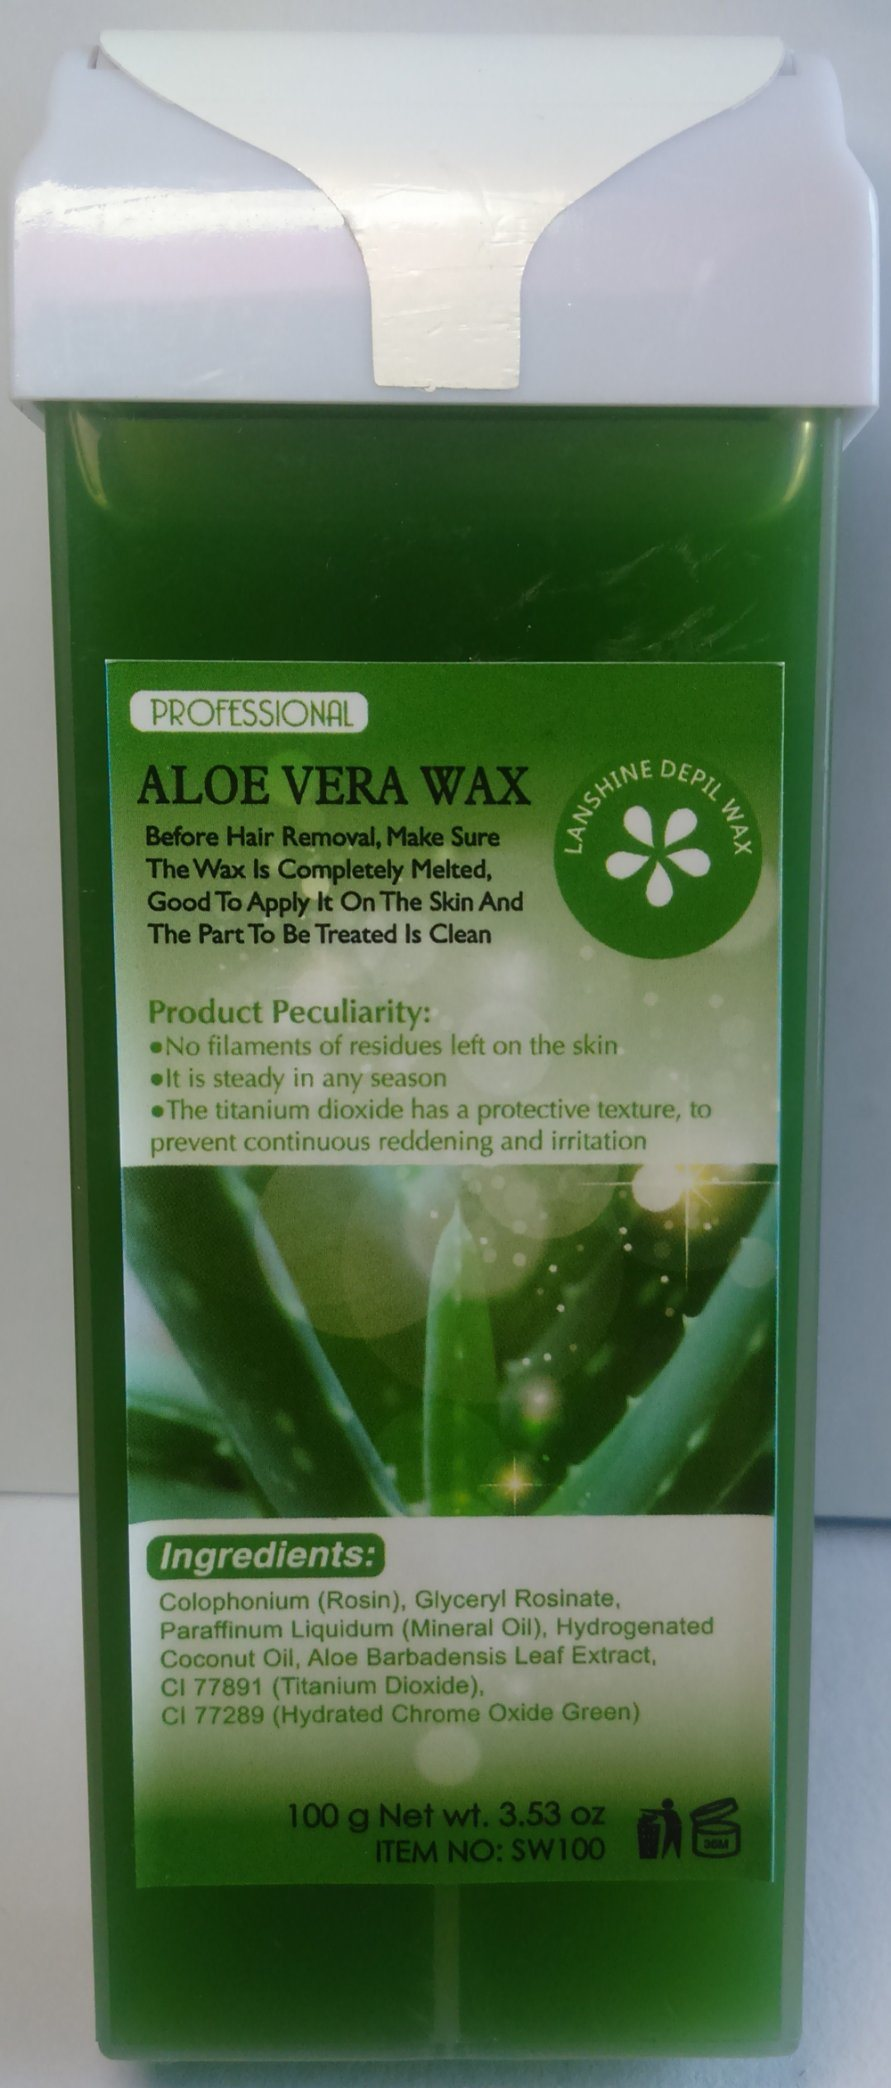 Roll-on Depilatory Wax Aloe Vera Wax